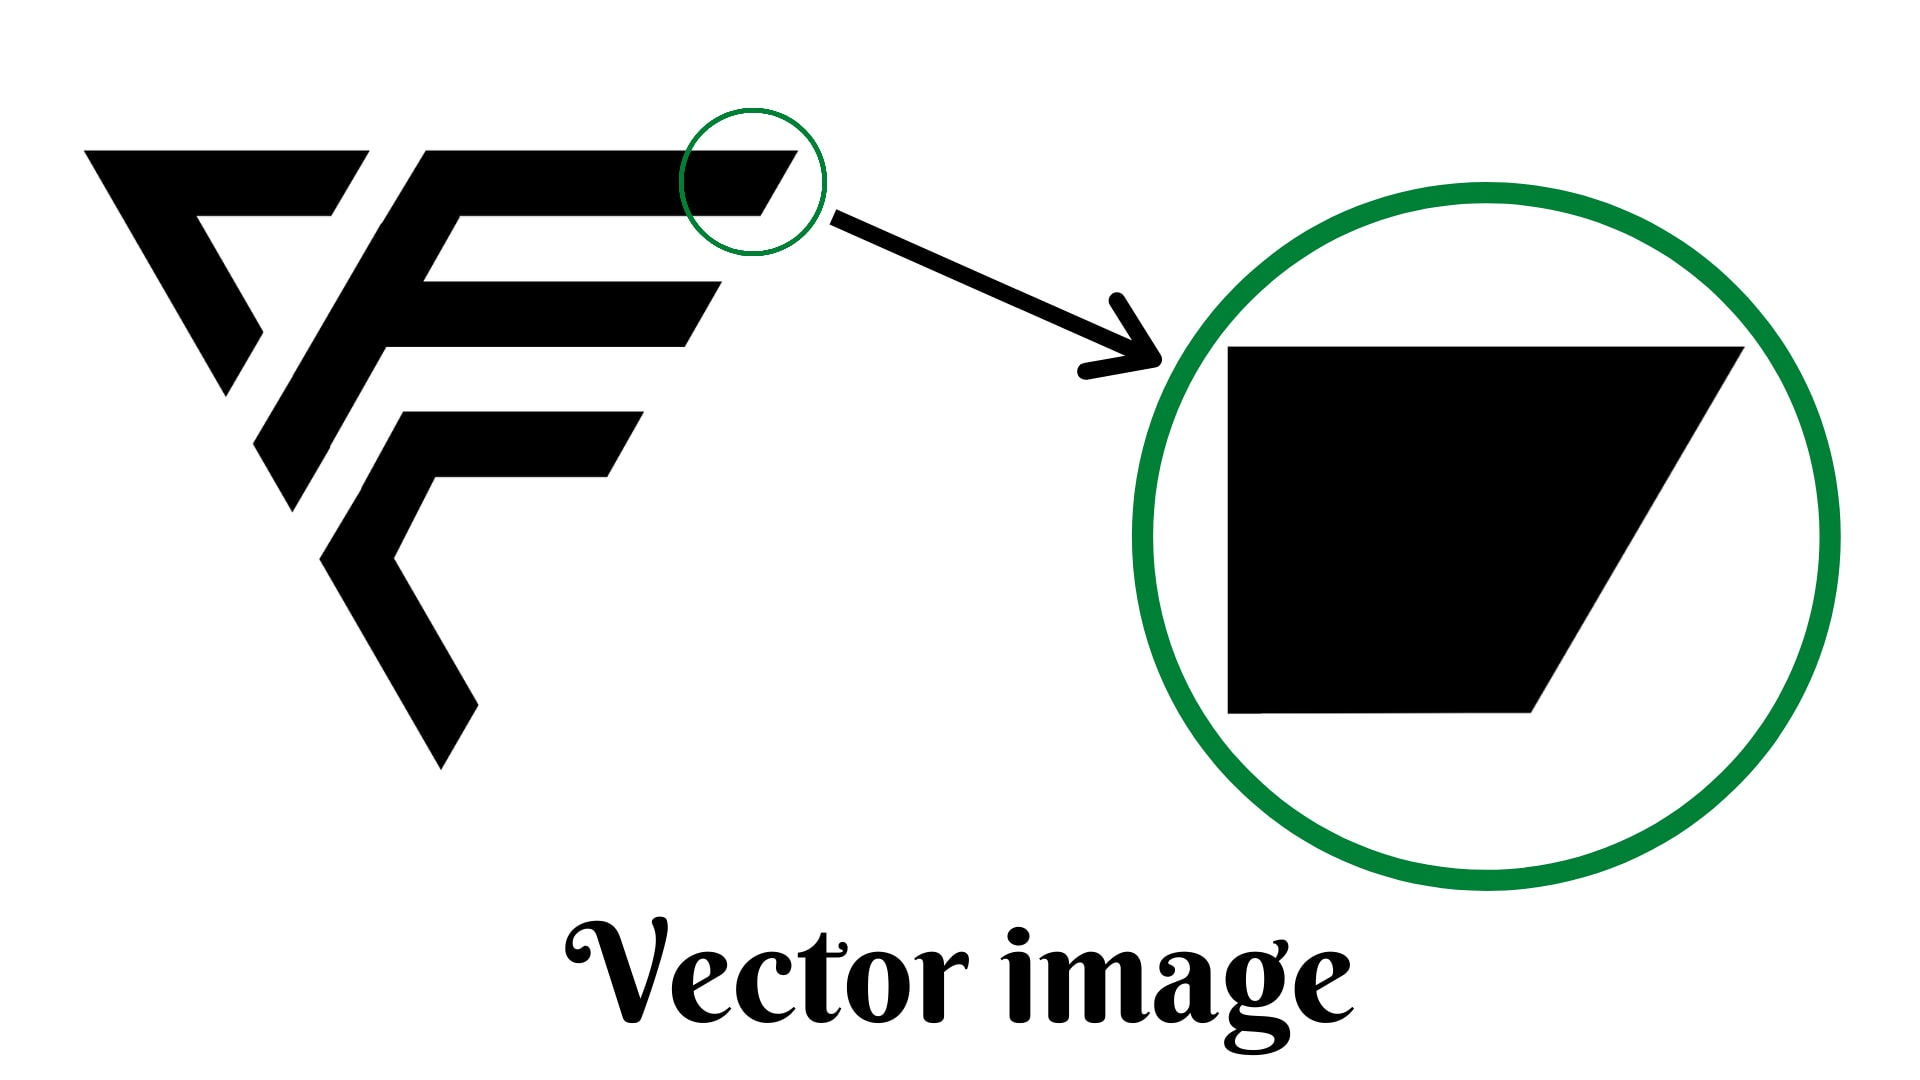 Vector image - JPG vs JPEG, What is the Difference Between JPG vs JPEG